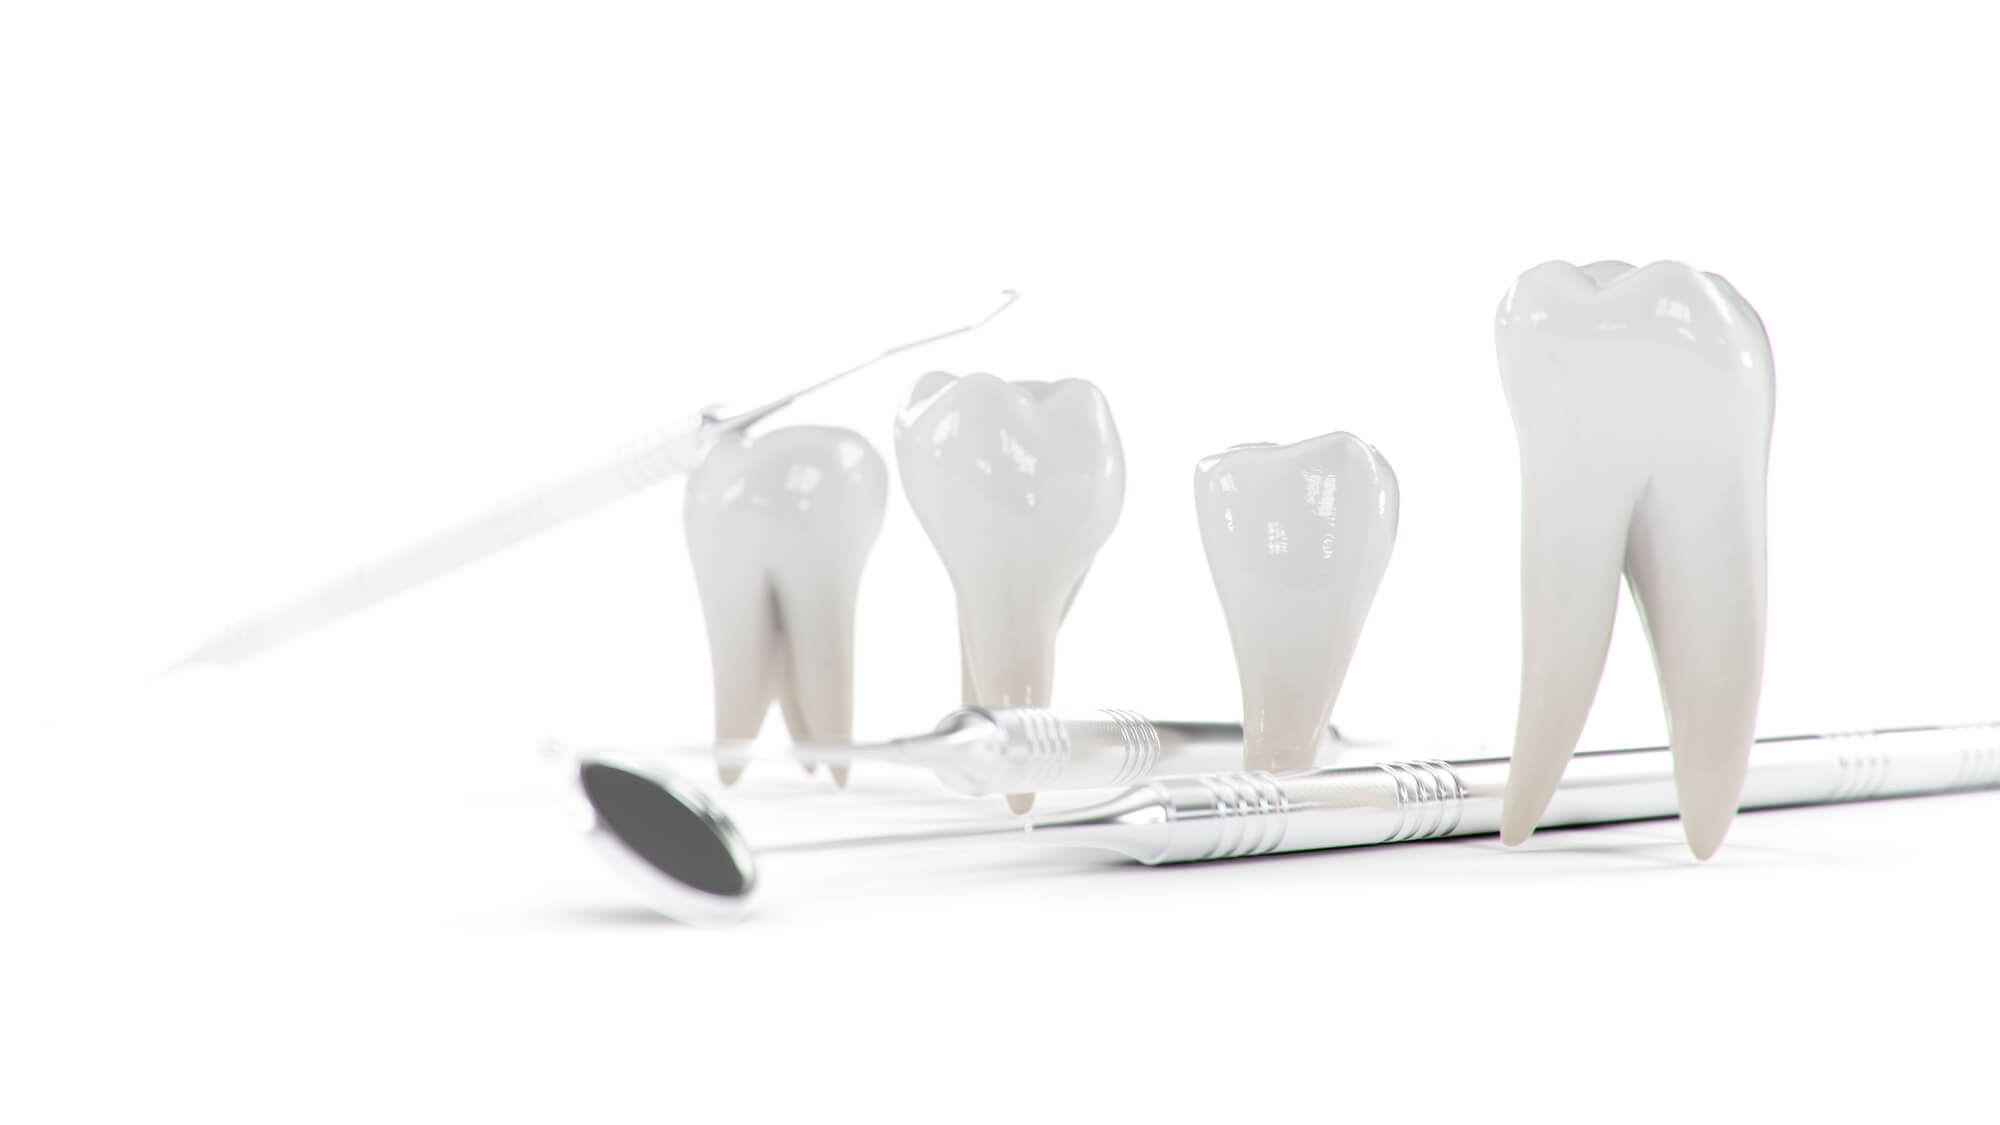 Crowns in a row with dental instrument 33330